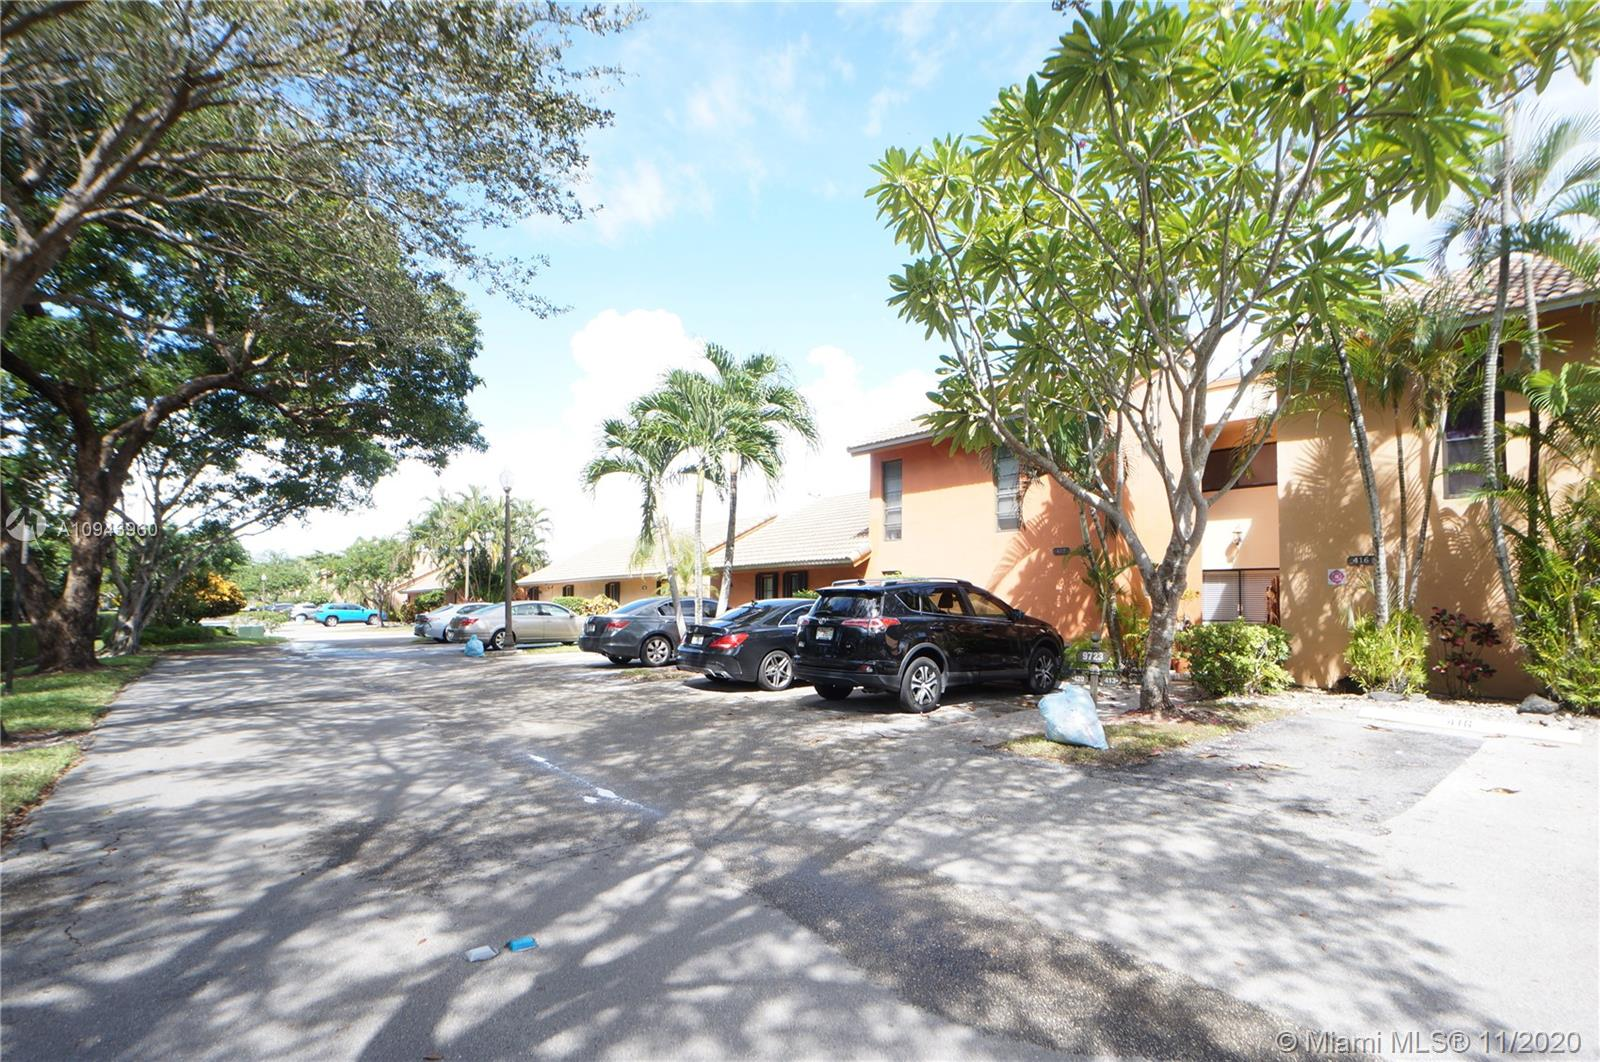 9723 N New River Canal Rd # 416, Plantation, Florida 33324, 3 Bedrooms Bedrooms, ,3 BathroomsBathrooms,Residential,For Sale,9723 N New River Canal Rd # 416,A10943960